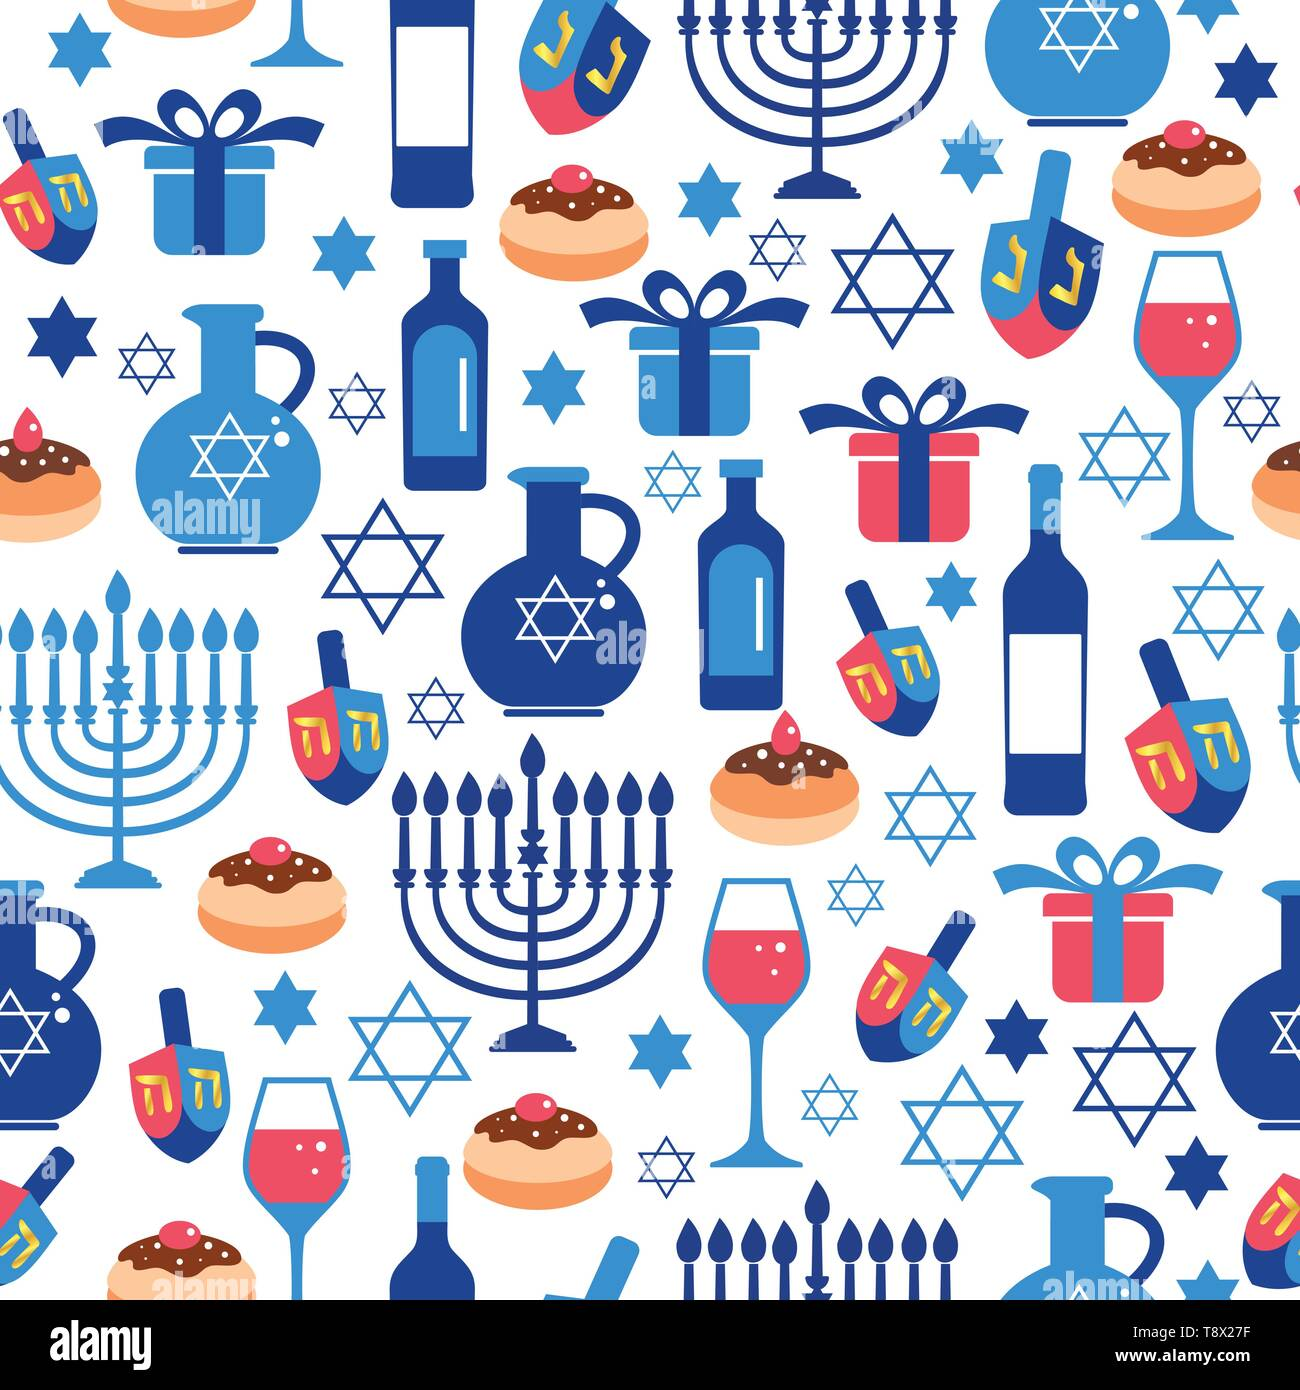 Jewish holiday Hanukkah greeting card traditional Chanukah symbols. Seamless pattern. - Stock Vector